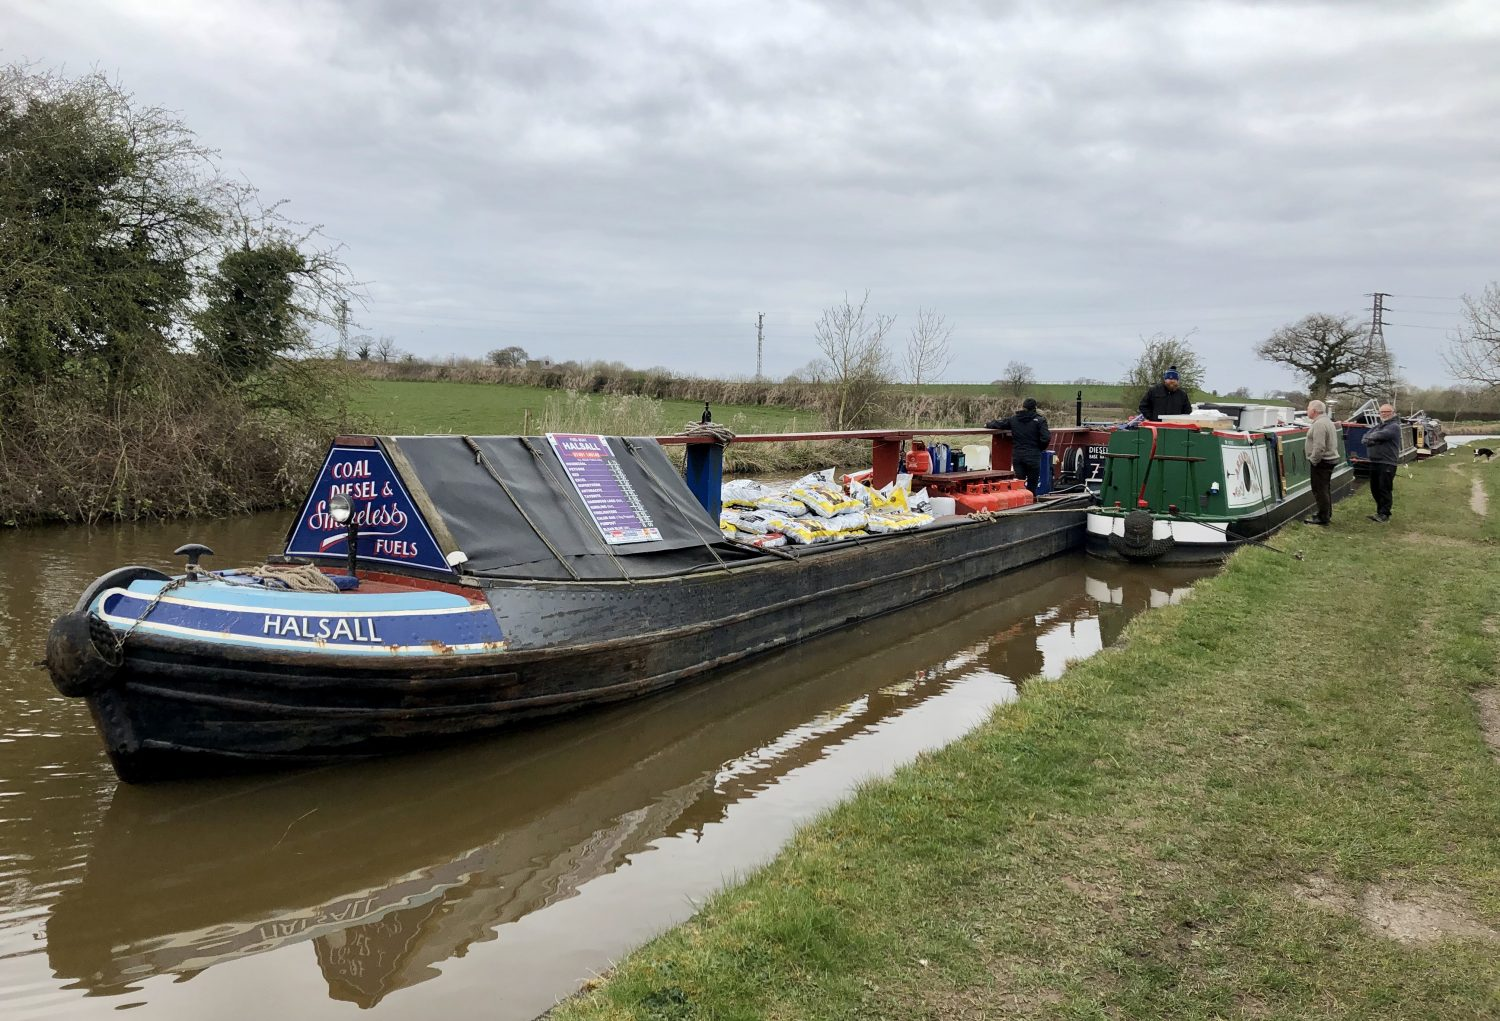 Fuel Boat Halsall and NB Areandare